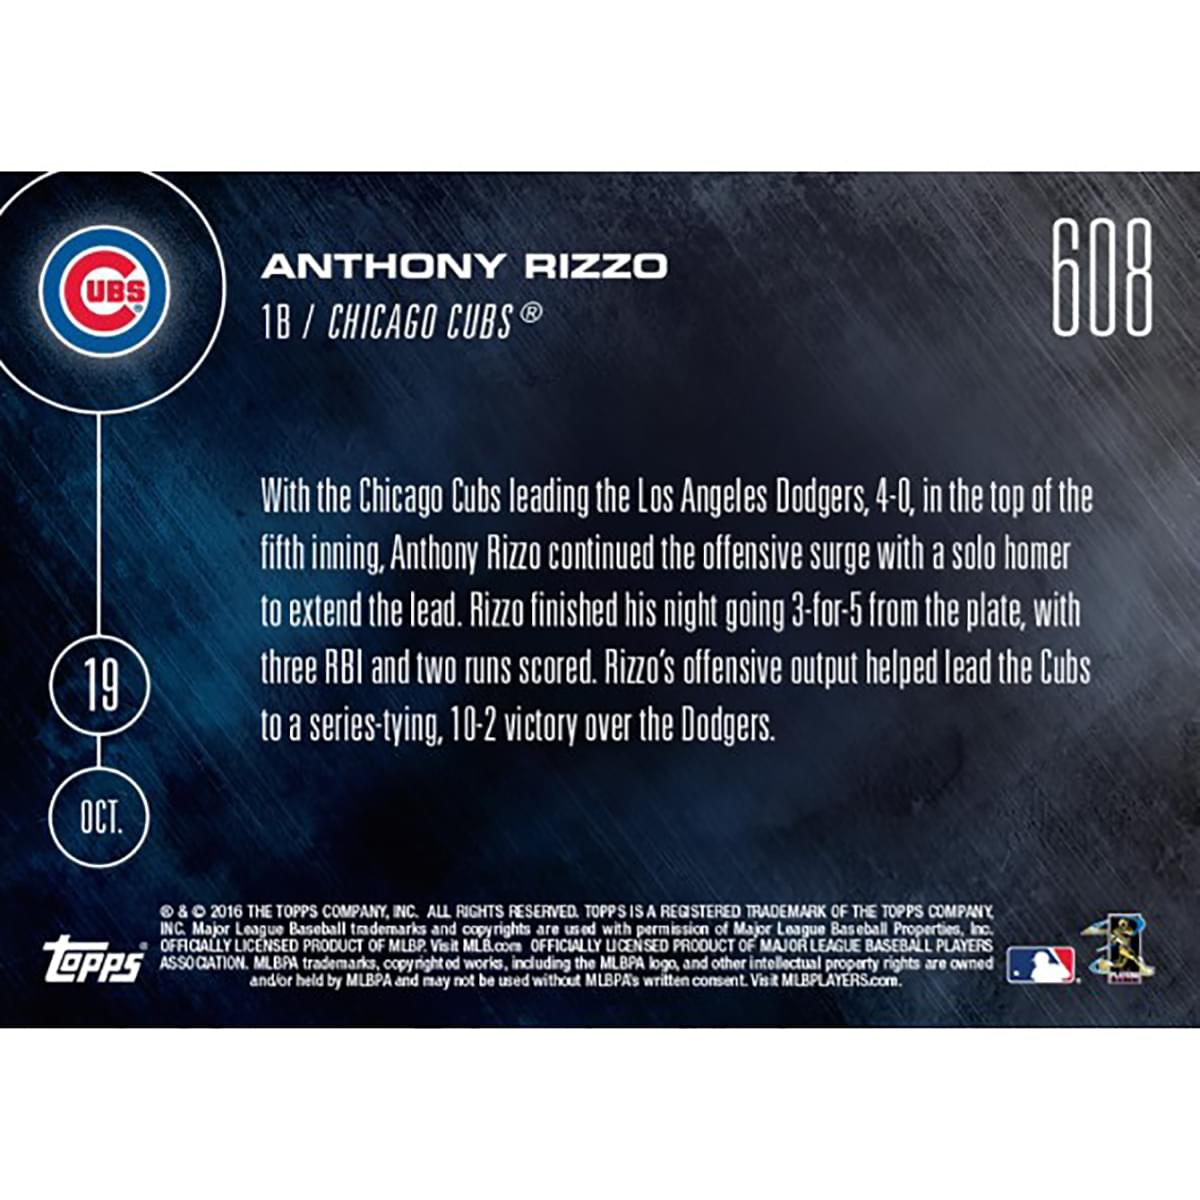 MLB Chicago Cubs Anthony Rizzo #608 2016 Topps NOW Trading Card